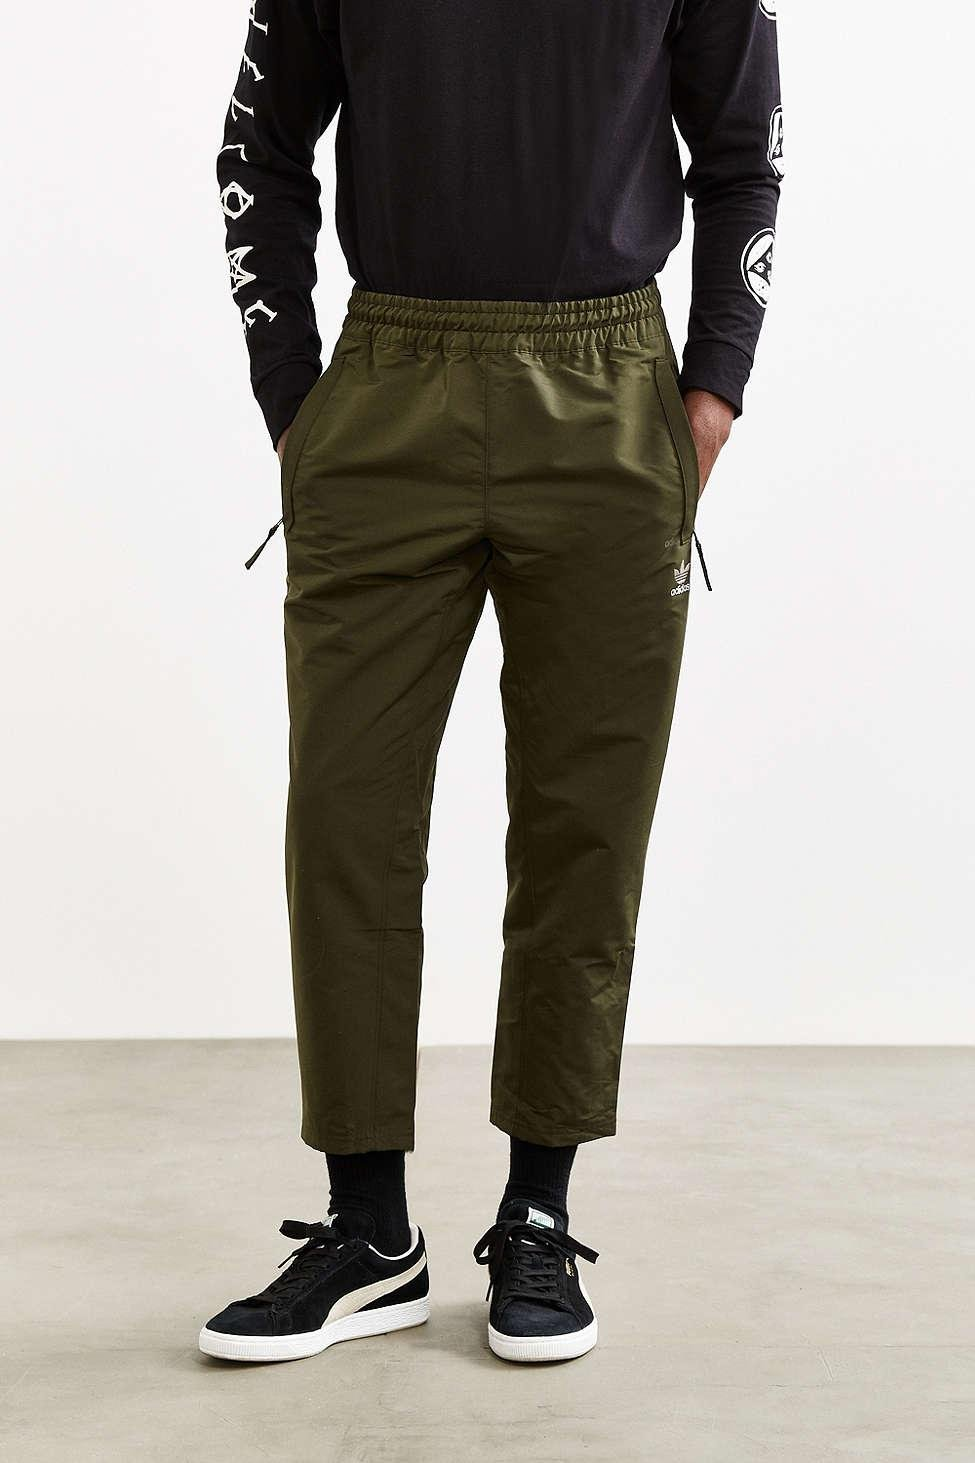 buy online 7e0be d88be Lyst - adidas Originals Fallen Future Woven Track Pant in Green for Men